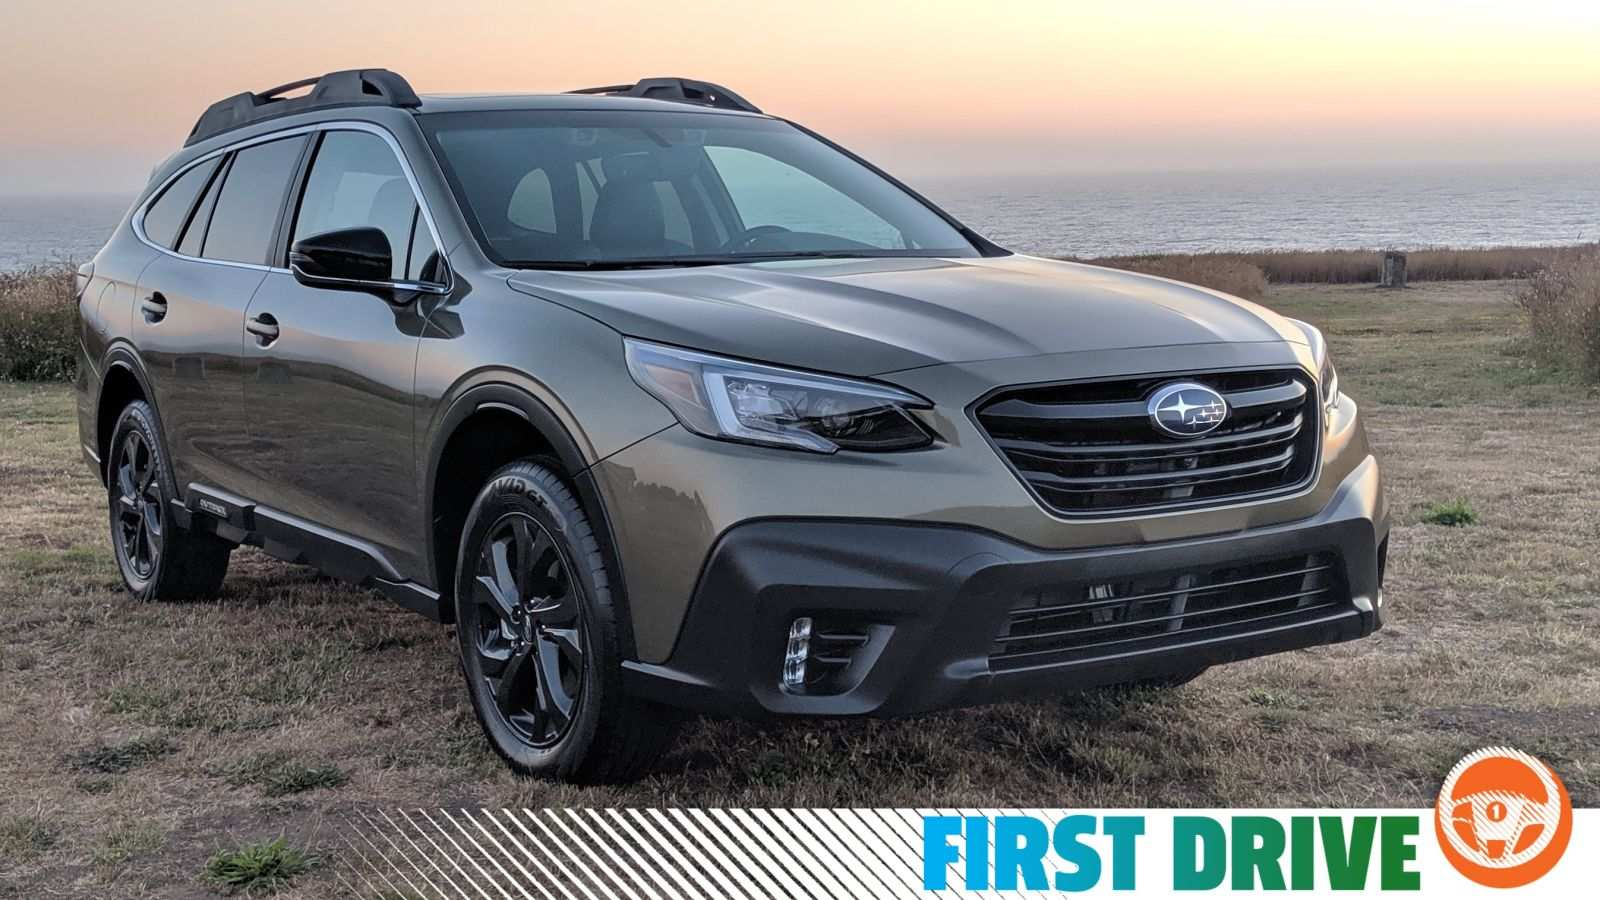 96 The 2020 Subaru Outback Photos Pictures with 2020 Subaru Outback Photos